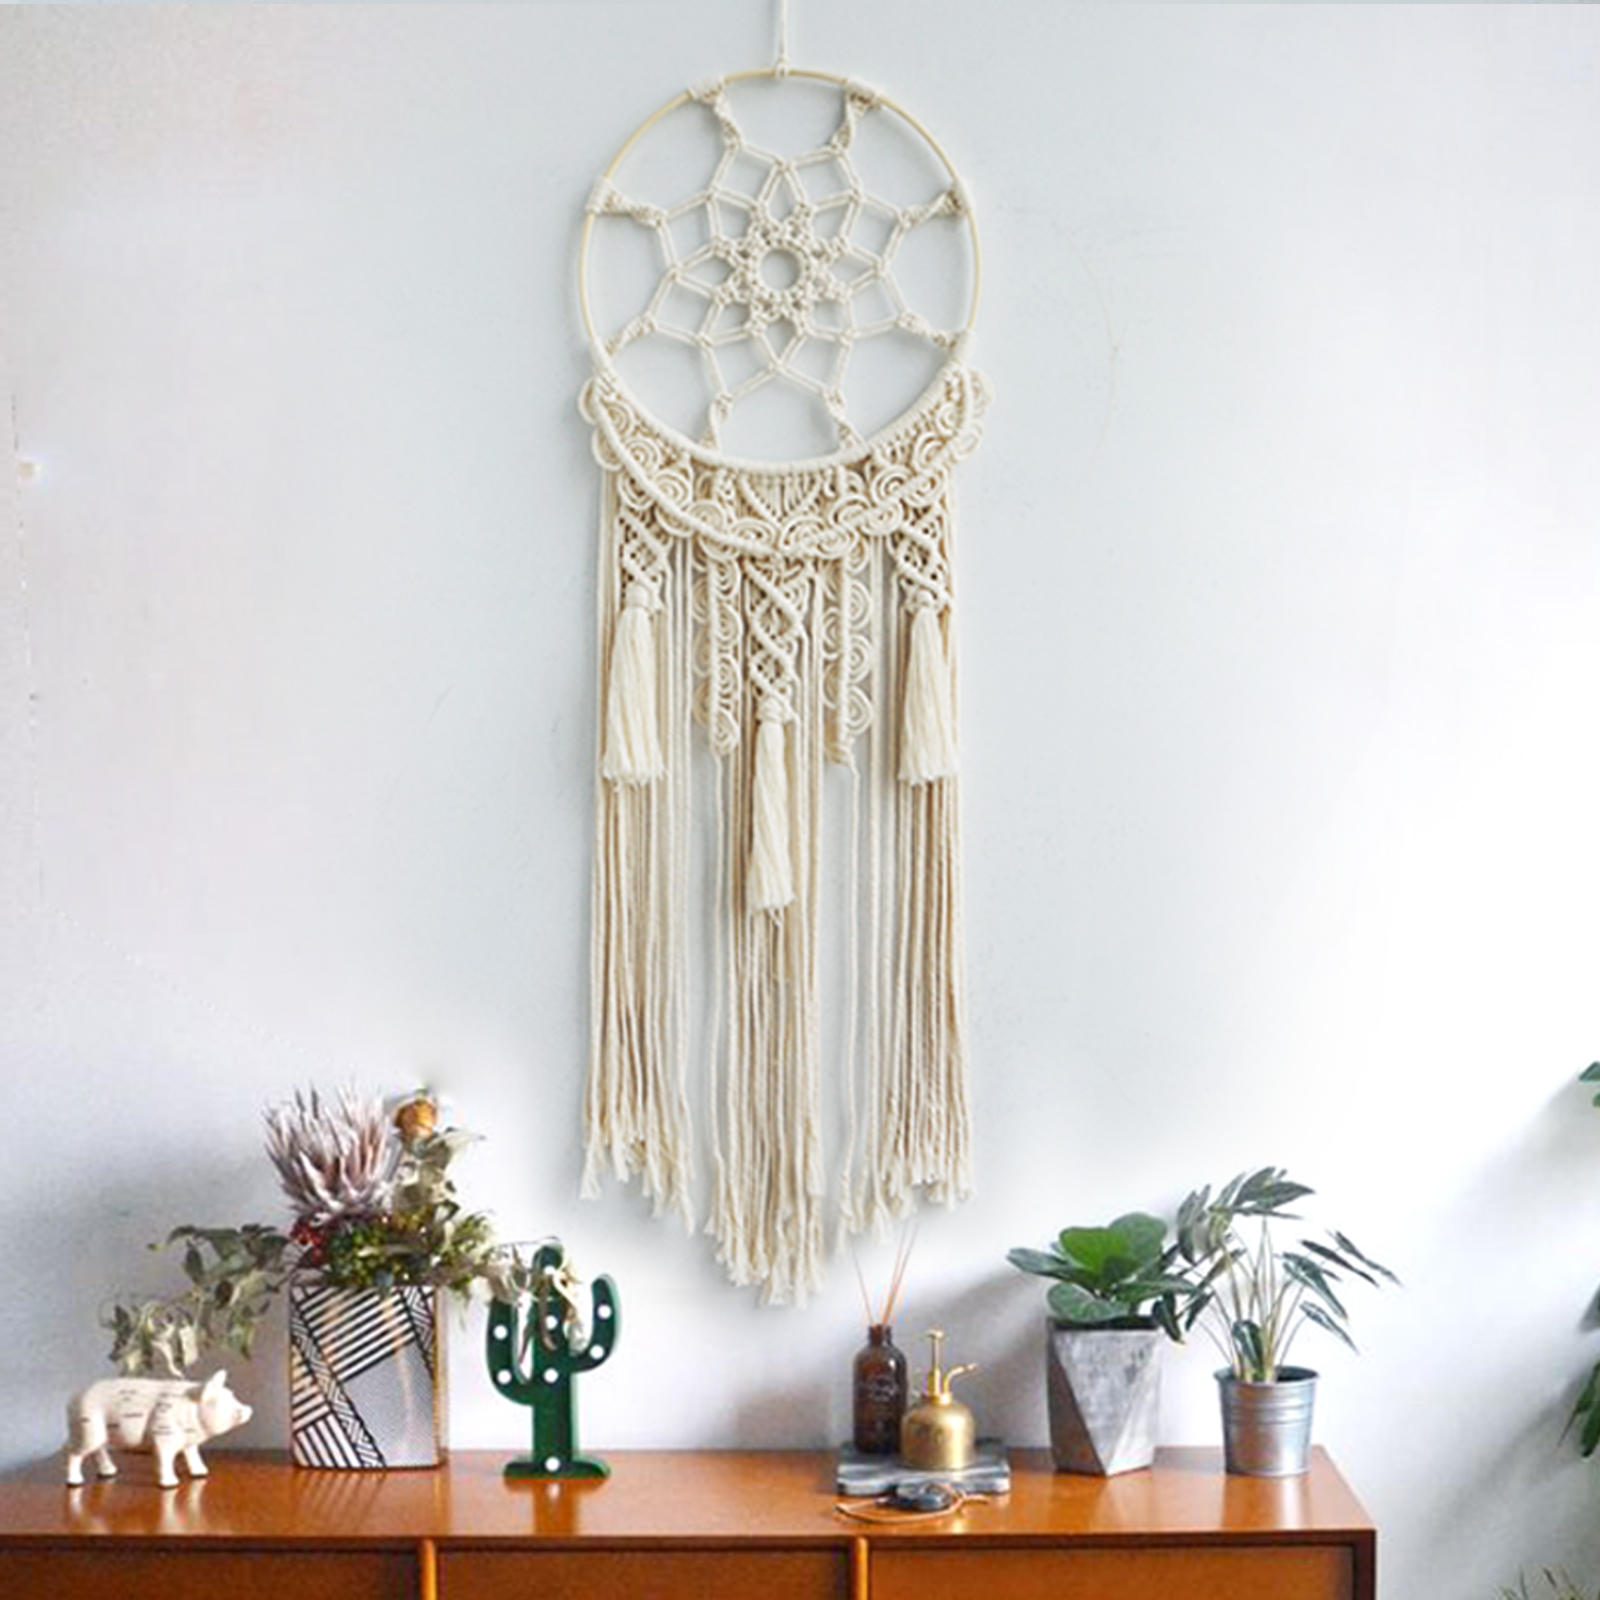 Macrame wall hanging Tapestry Handmade Cotton cord Weaving Living Room Bedroom Ornaments B B Decoration Boho Decor Dream Catcher in Tapestry from Home Garden